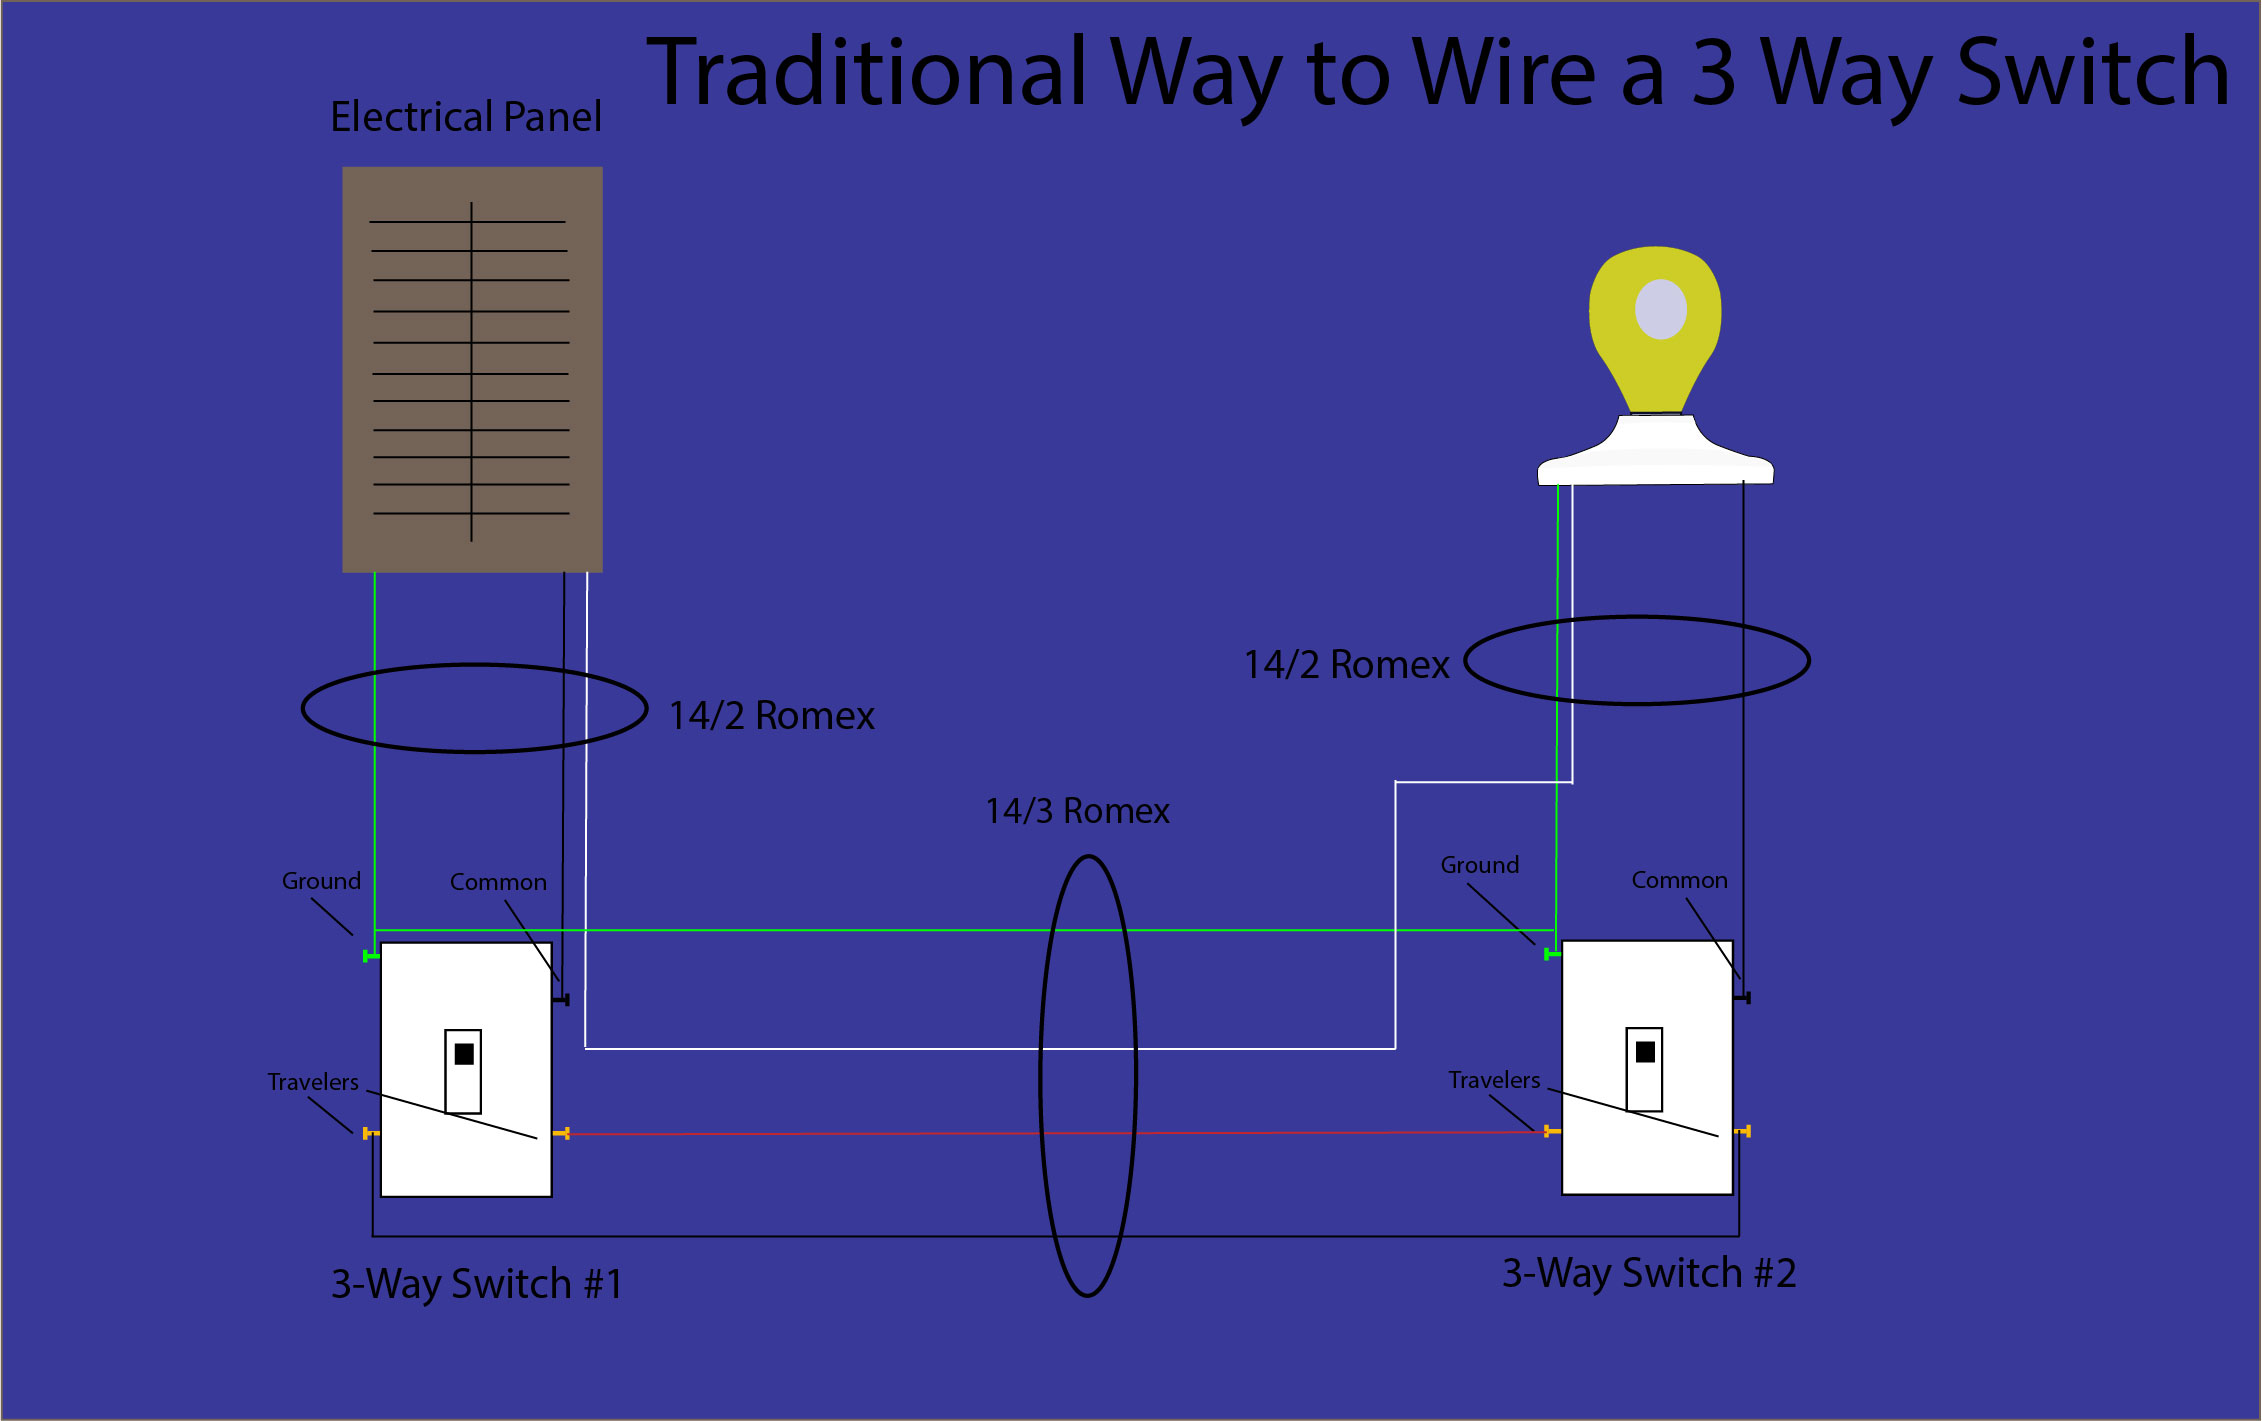 How to wire a 3 way switch - Smart Home Mastery